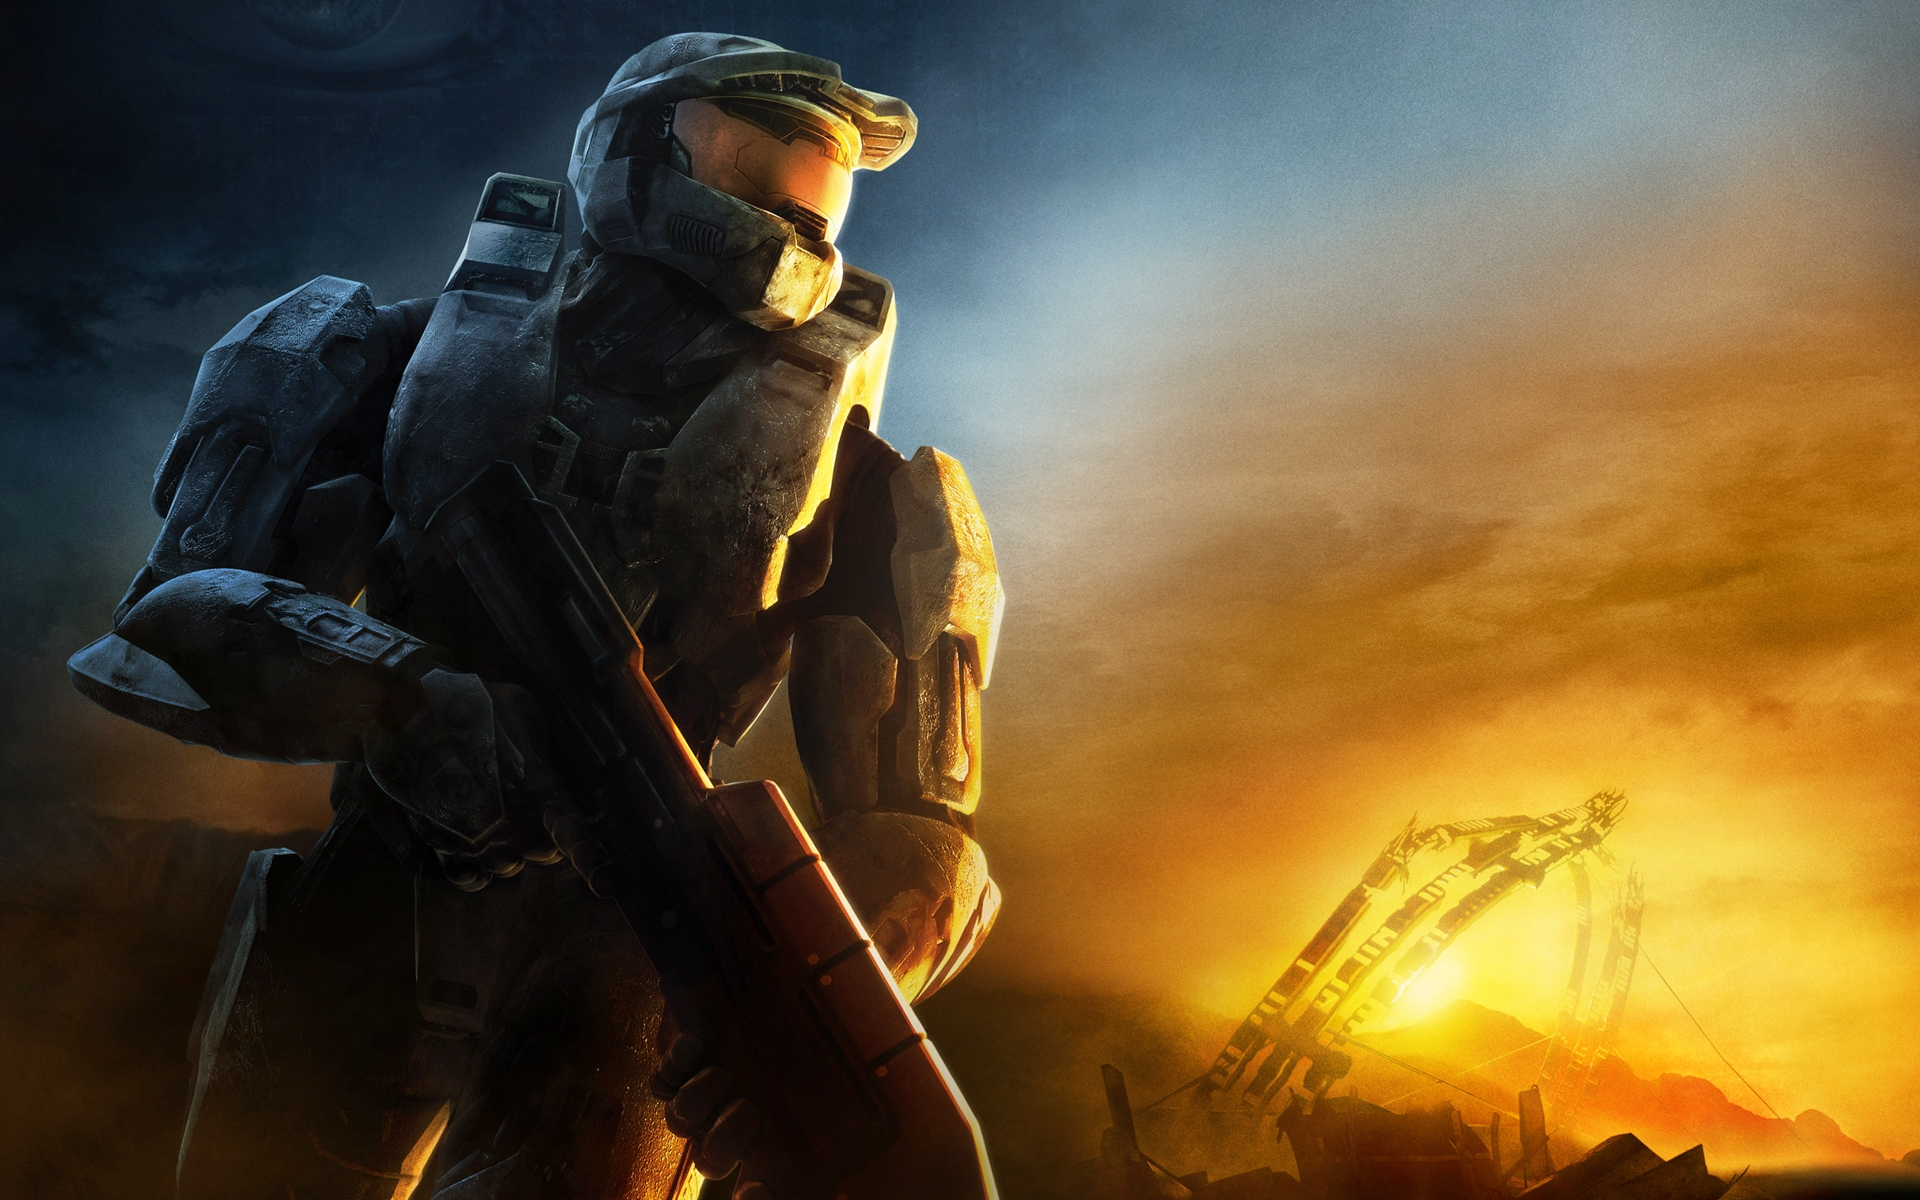 Halo Wallpapers and Backgrounds 1920x1200